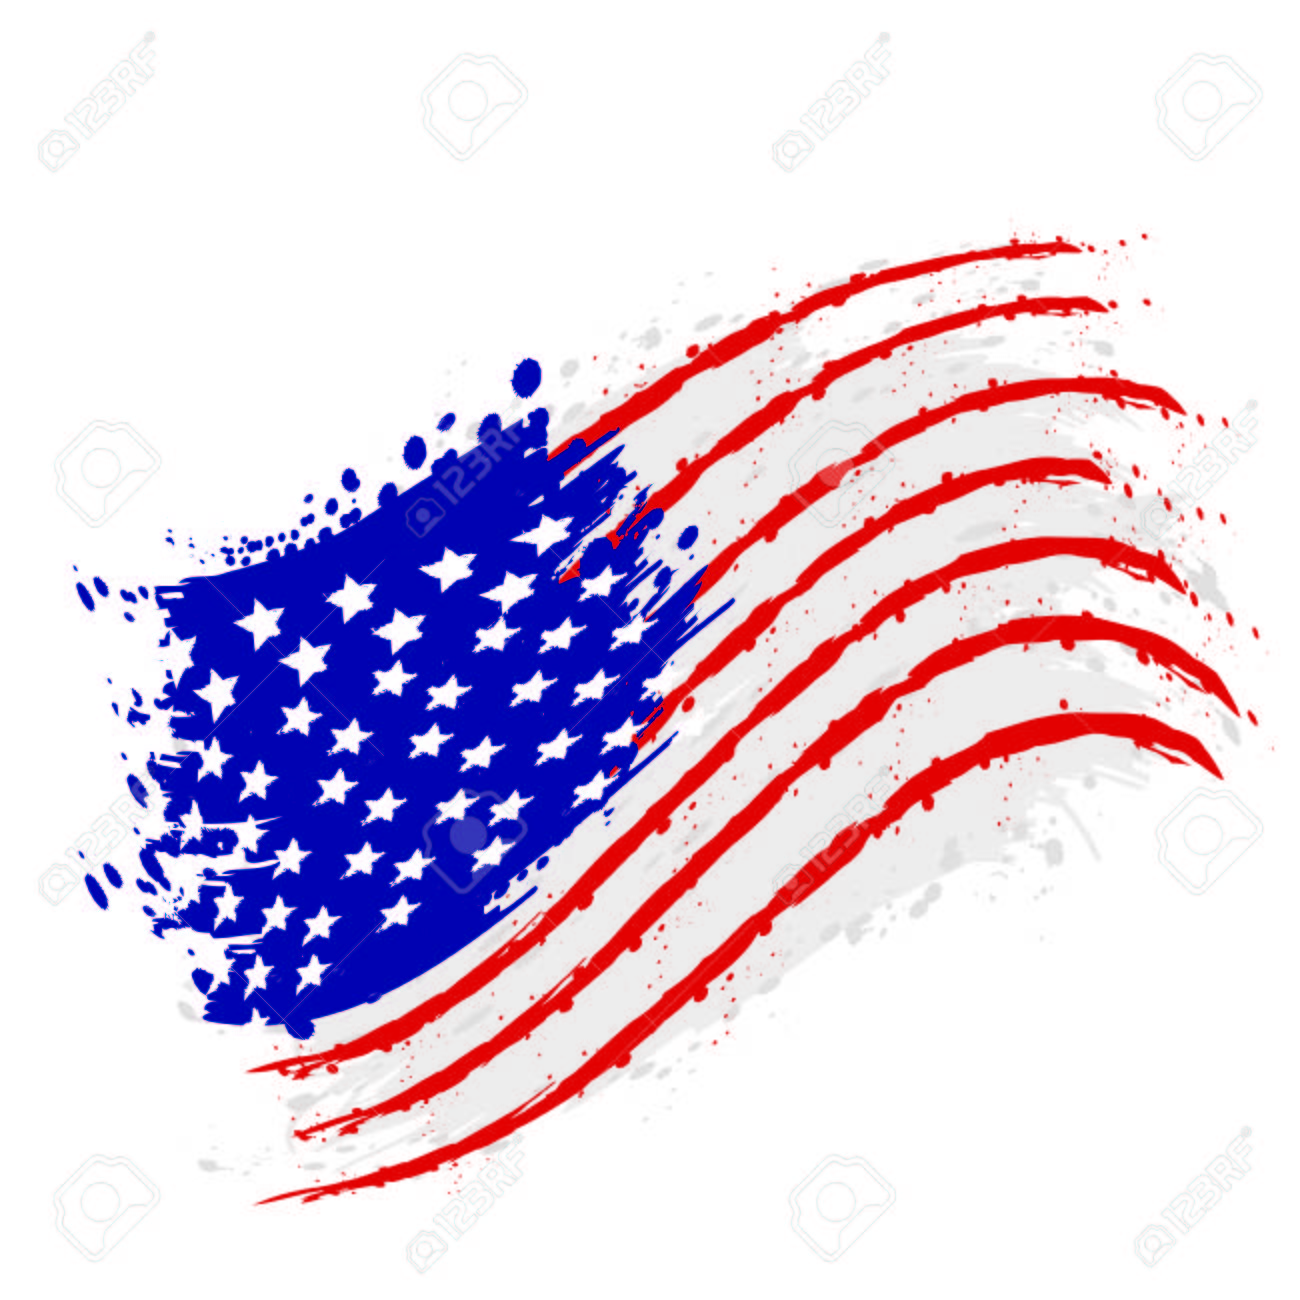 watercolor flag of United States, vector illustration design - 125330286